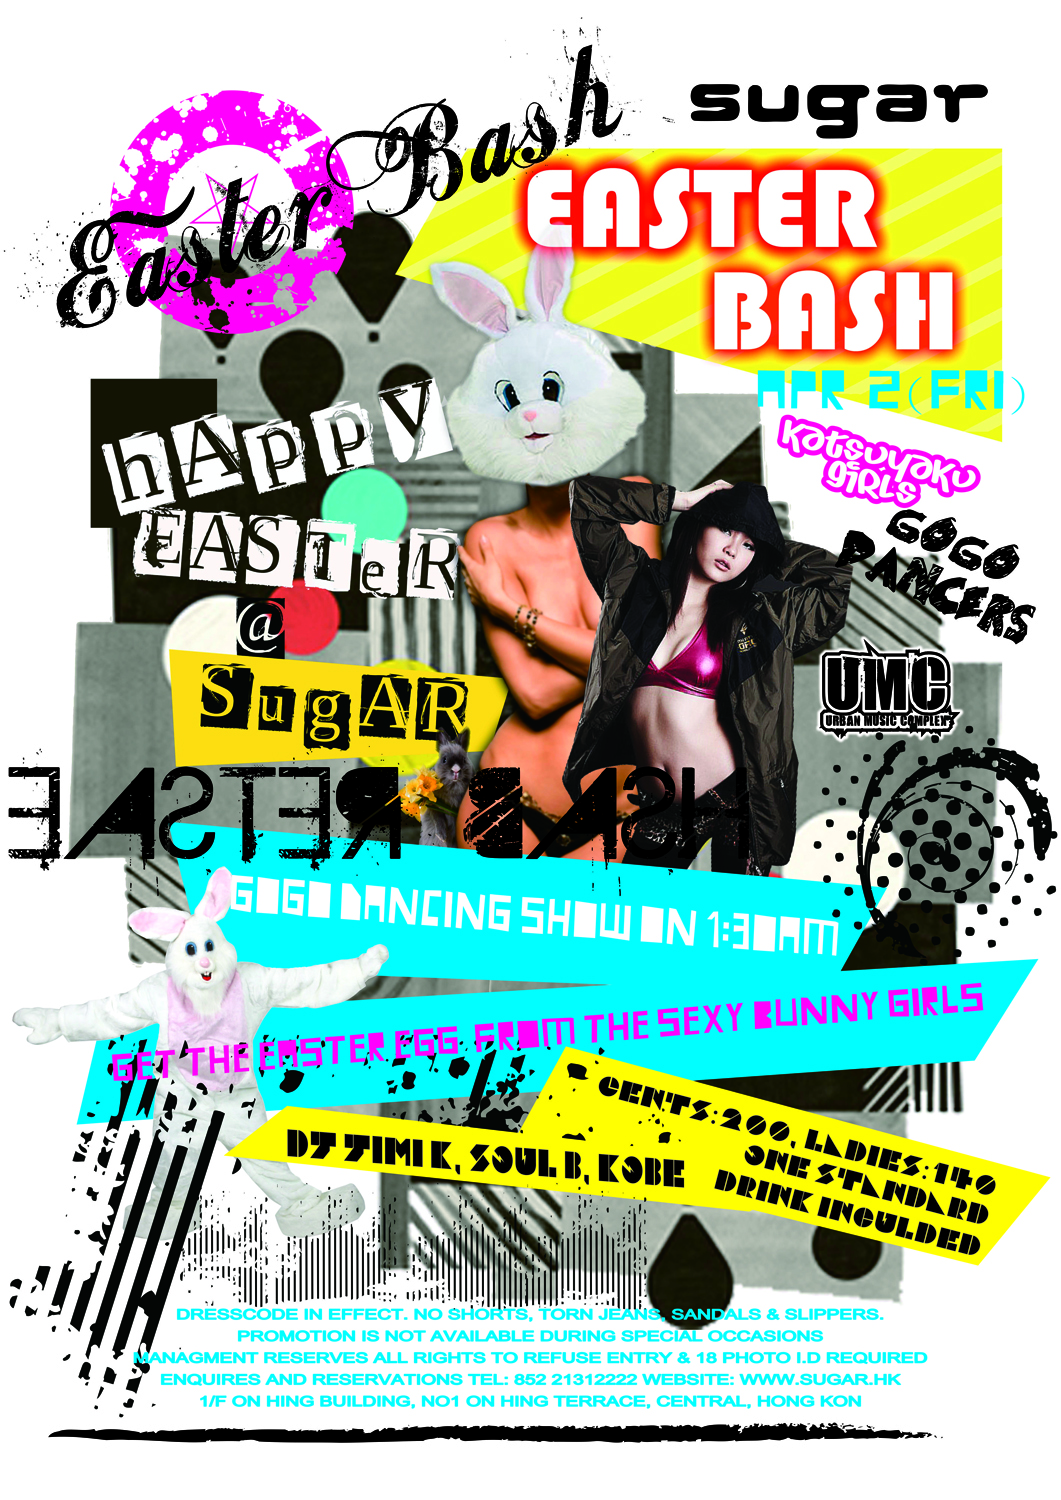 Apr 2 easter bash - final -s.jpg